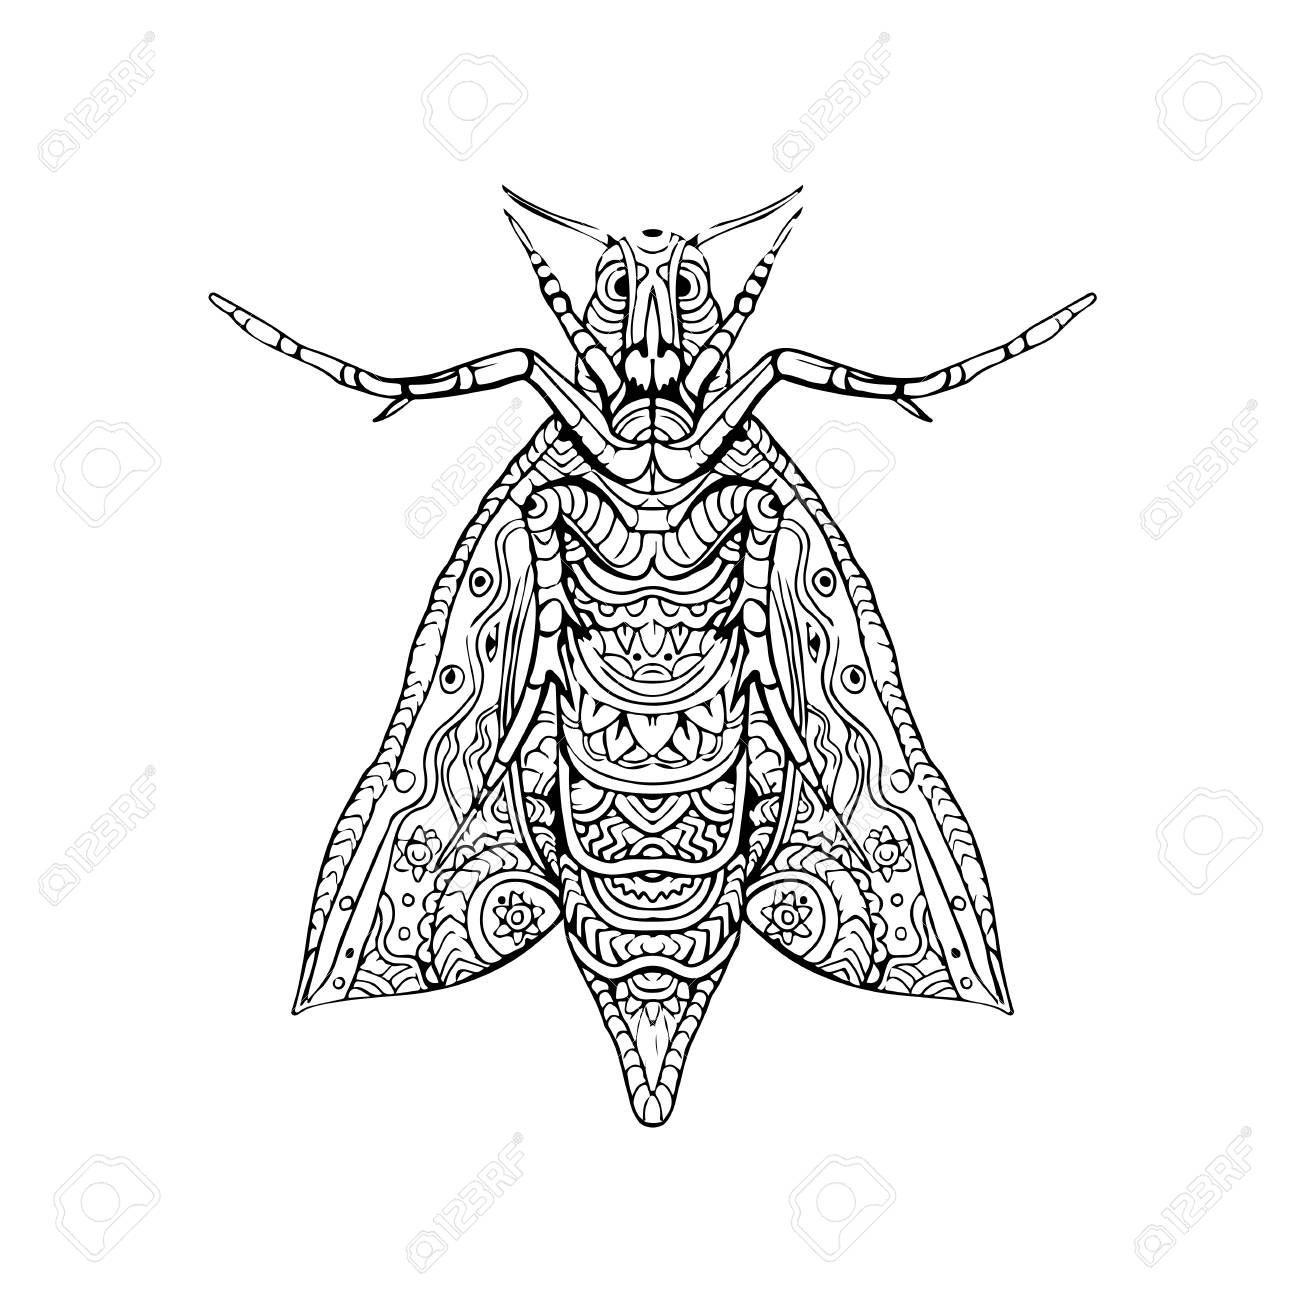 1300x1300 Illustration Of An Elephant Hawk Moth Done In Hand Sketch Drawing